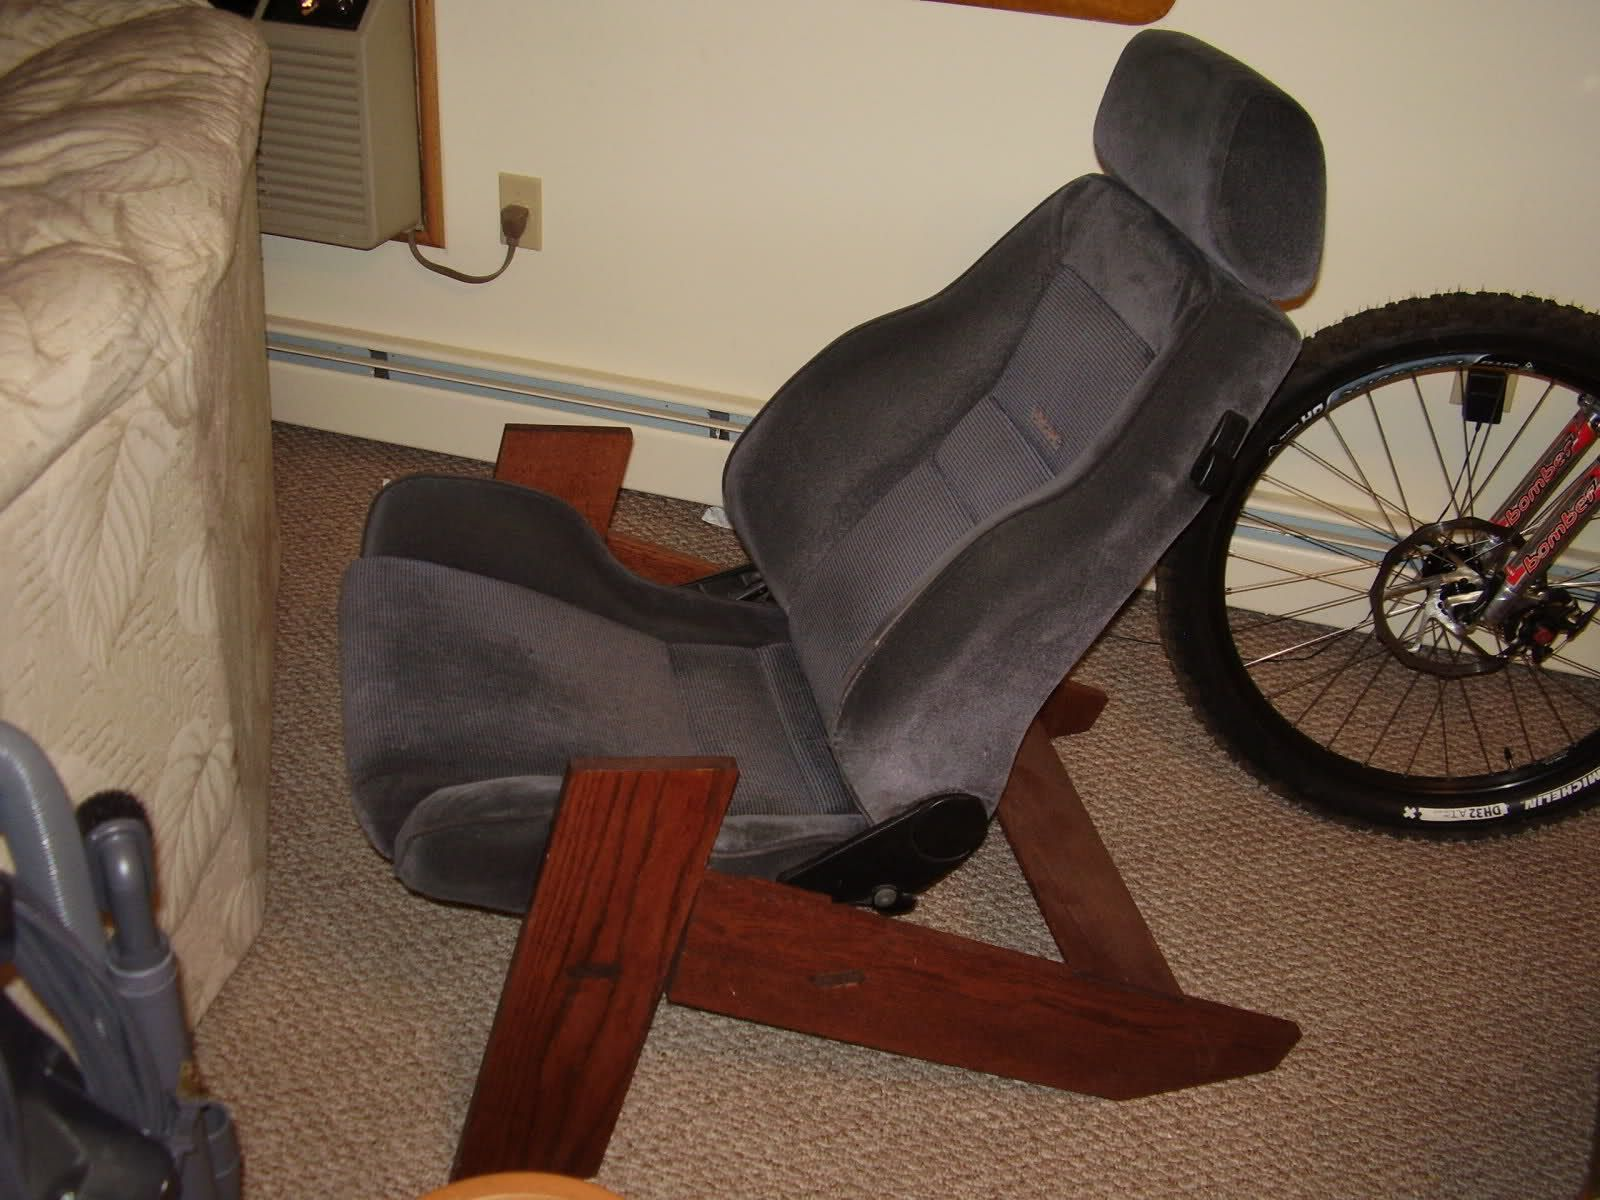 What To Do With Old Car Seats >> Diy Ideas For Repurposed Car Seats Diy Ideas For Reusing